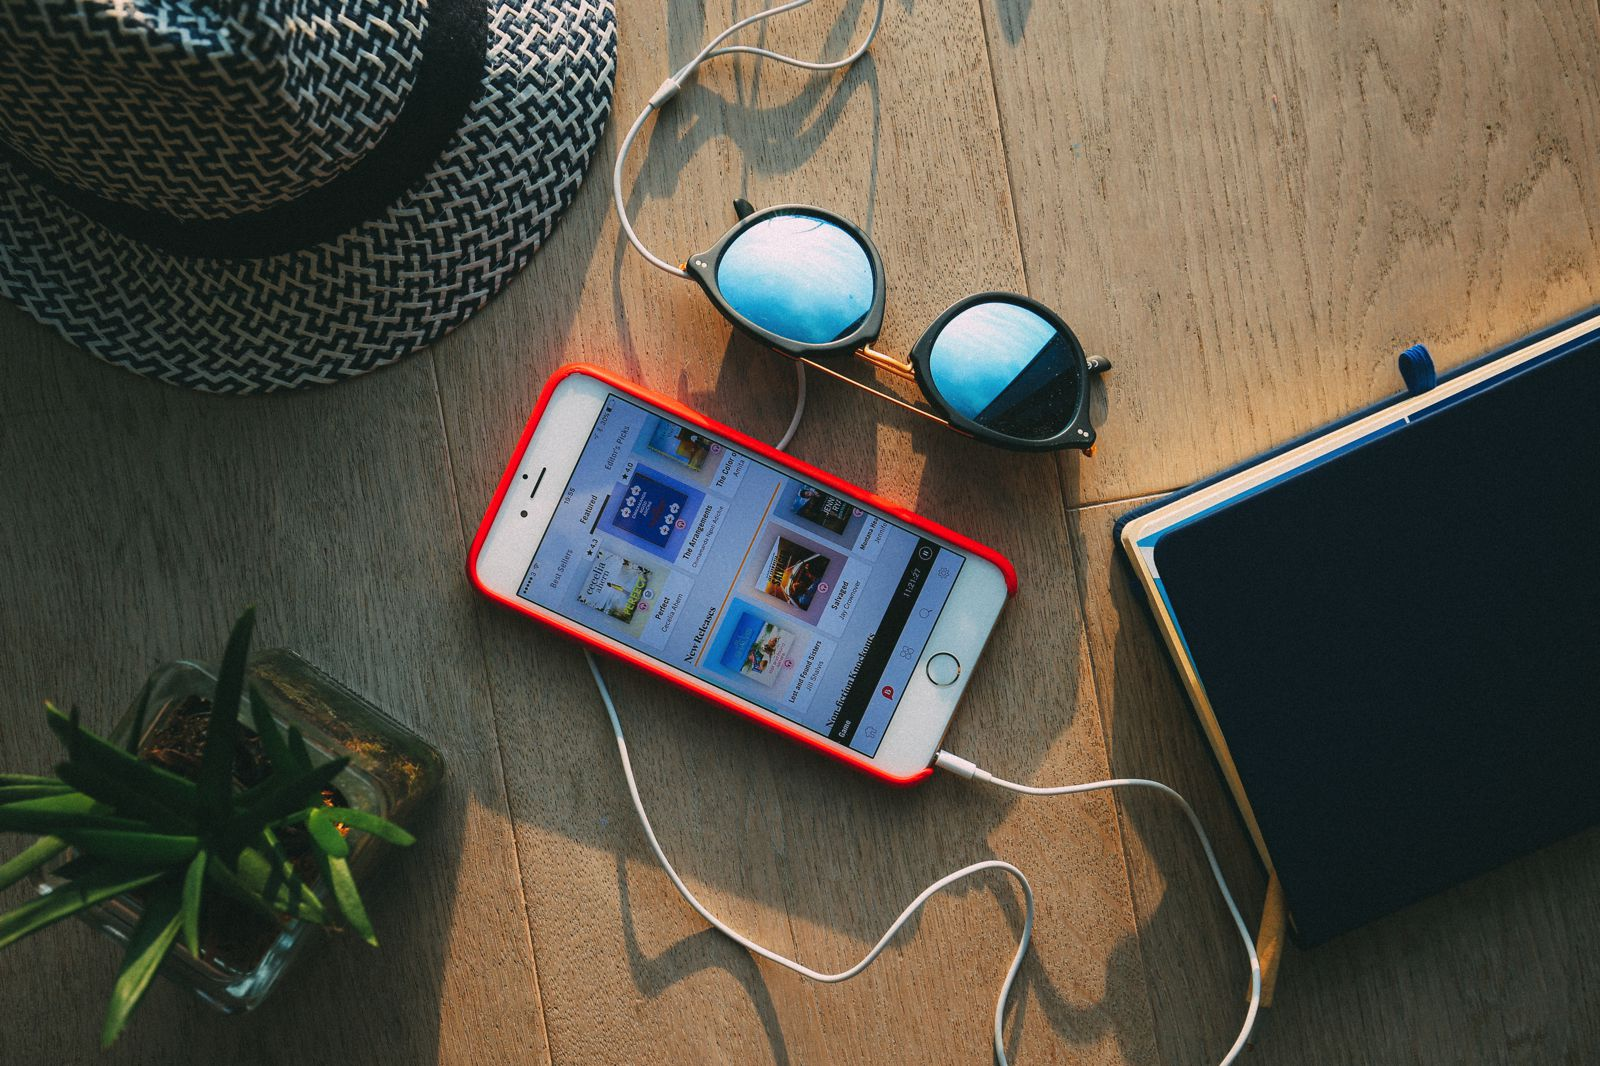 BookBeat For AudioBooks - This Is The Perfect Travel Companion! (20)